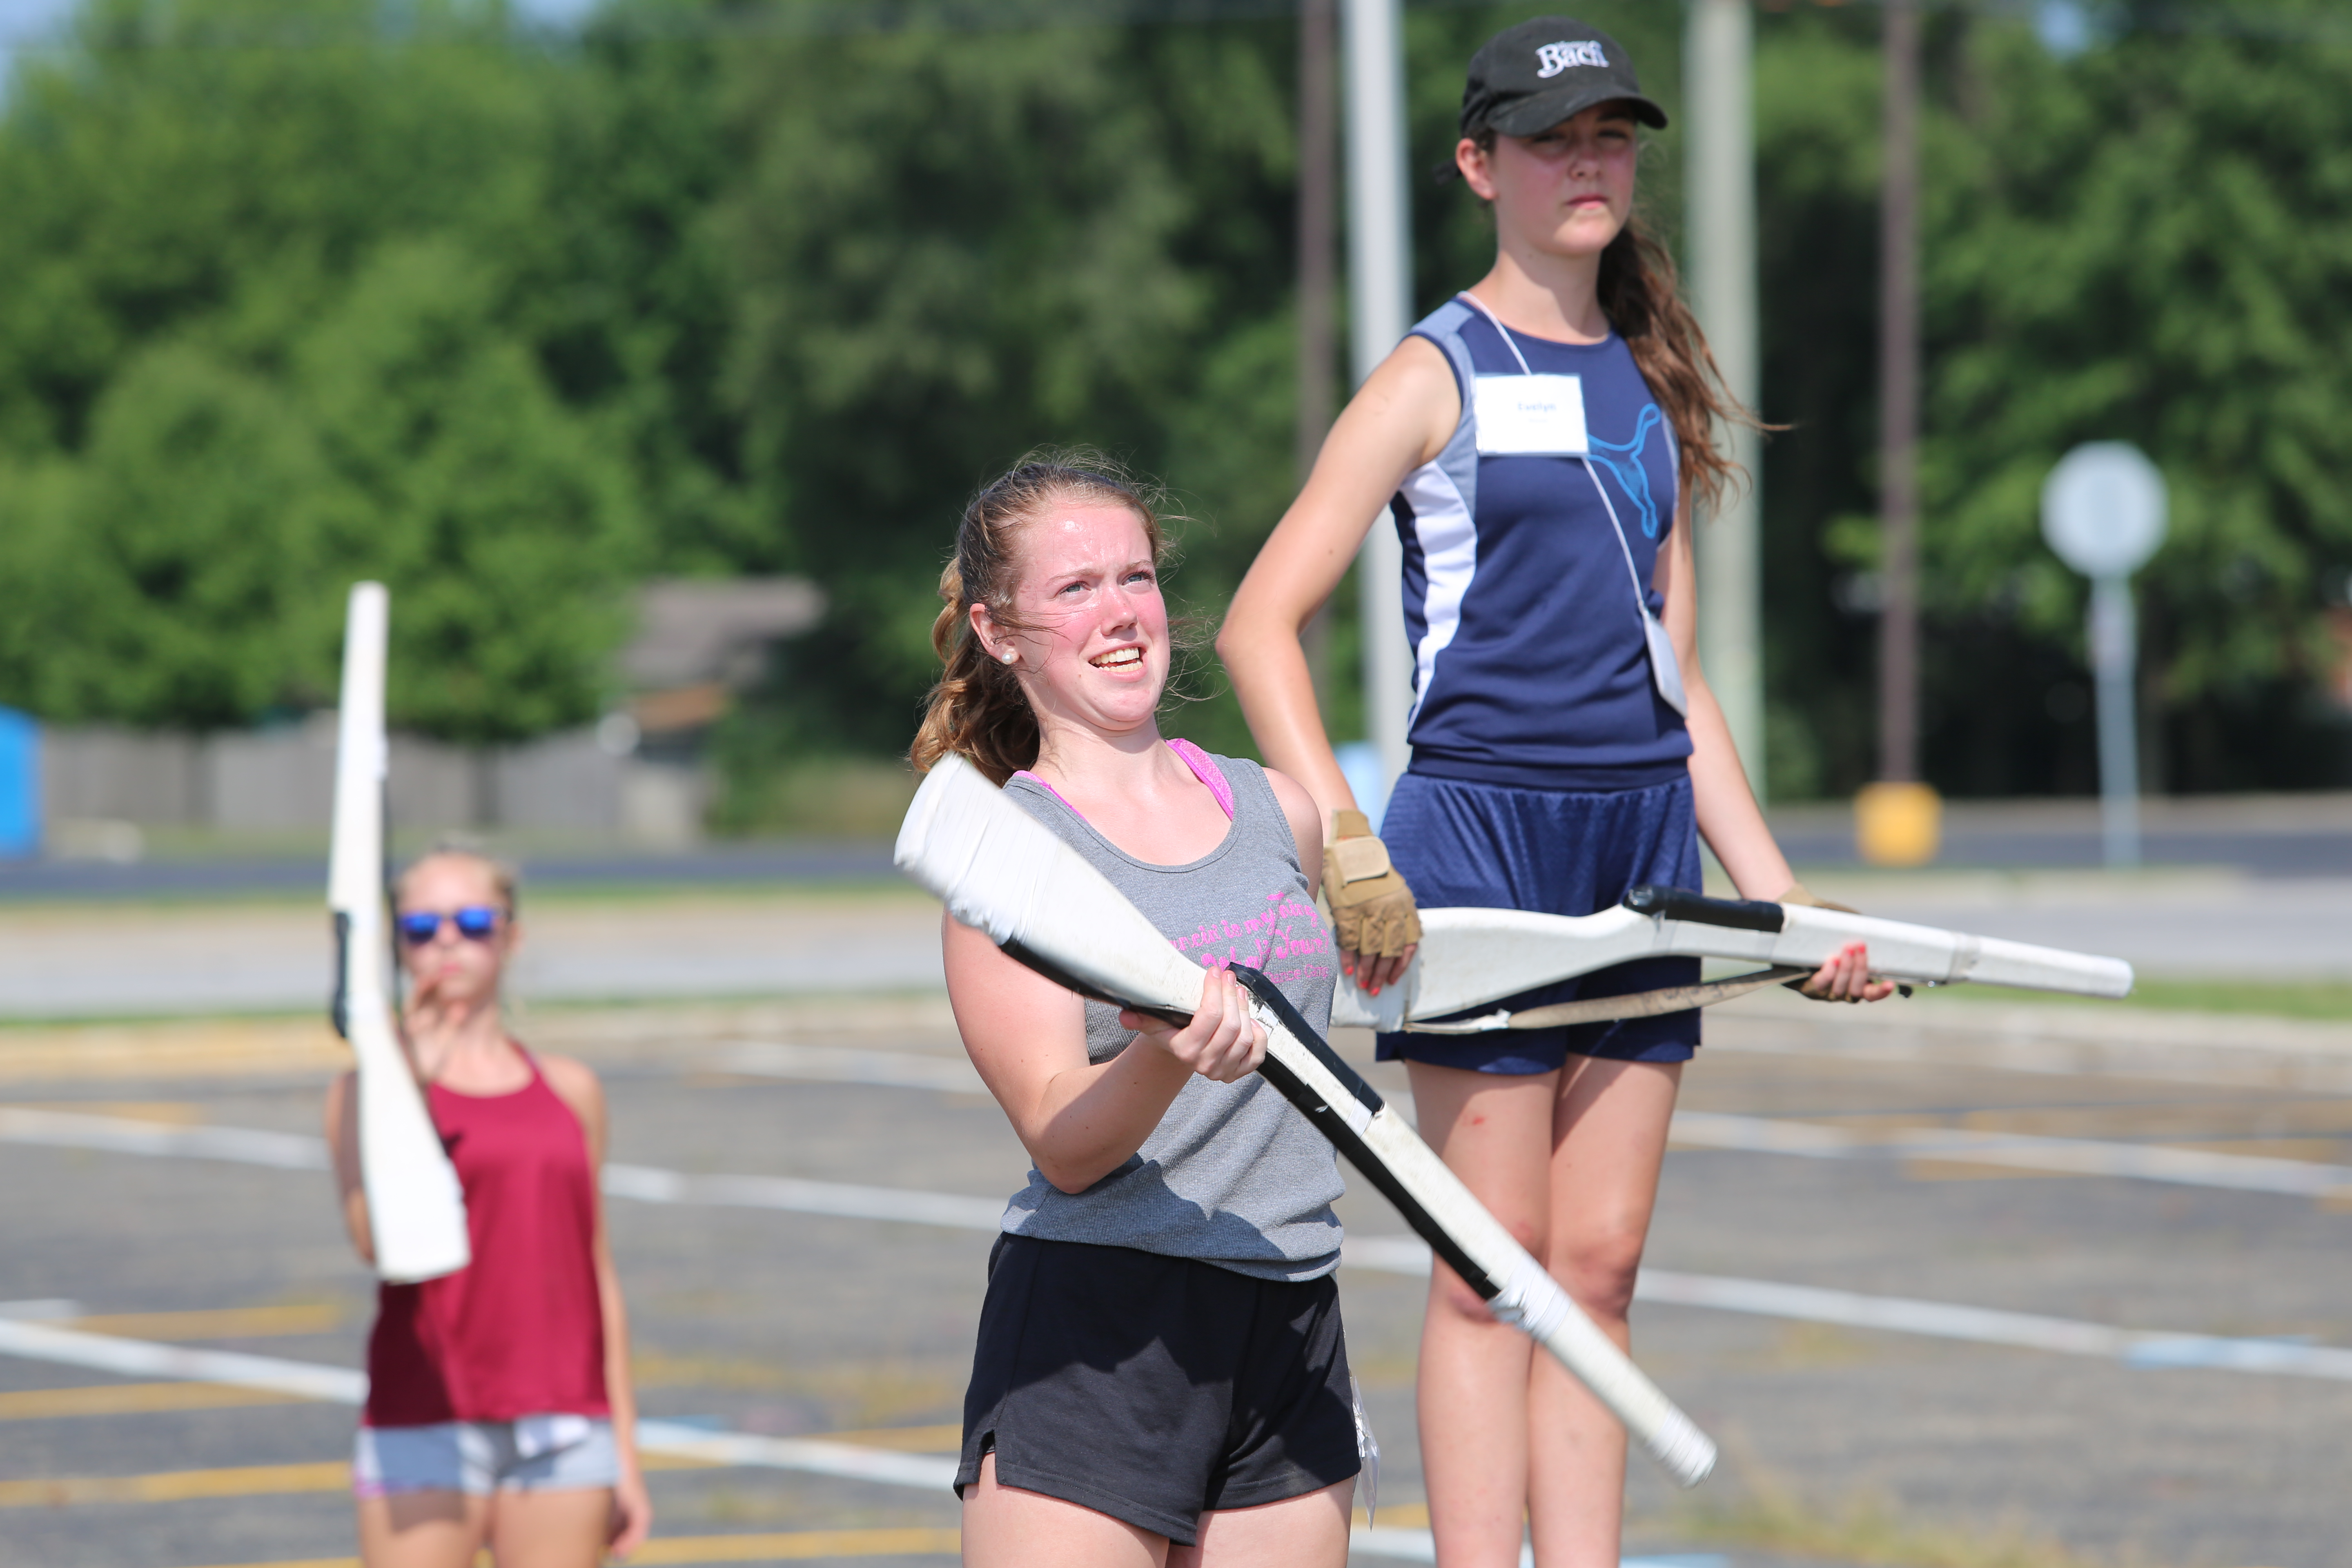 Kingsmen Band Practice Photo Gallery | Penn High School